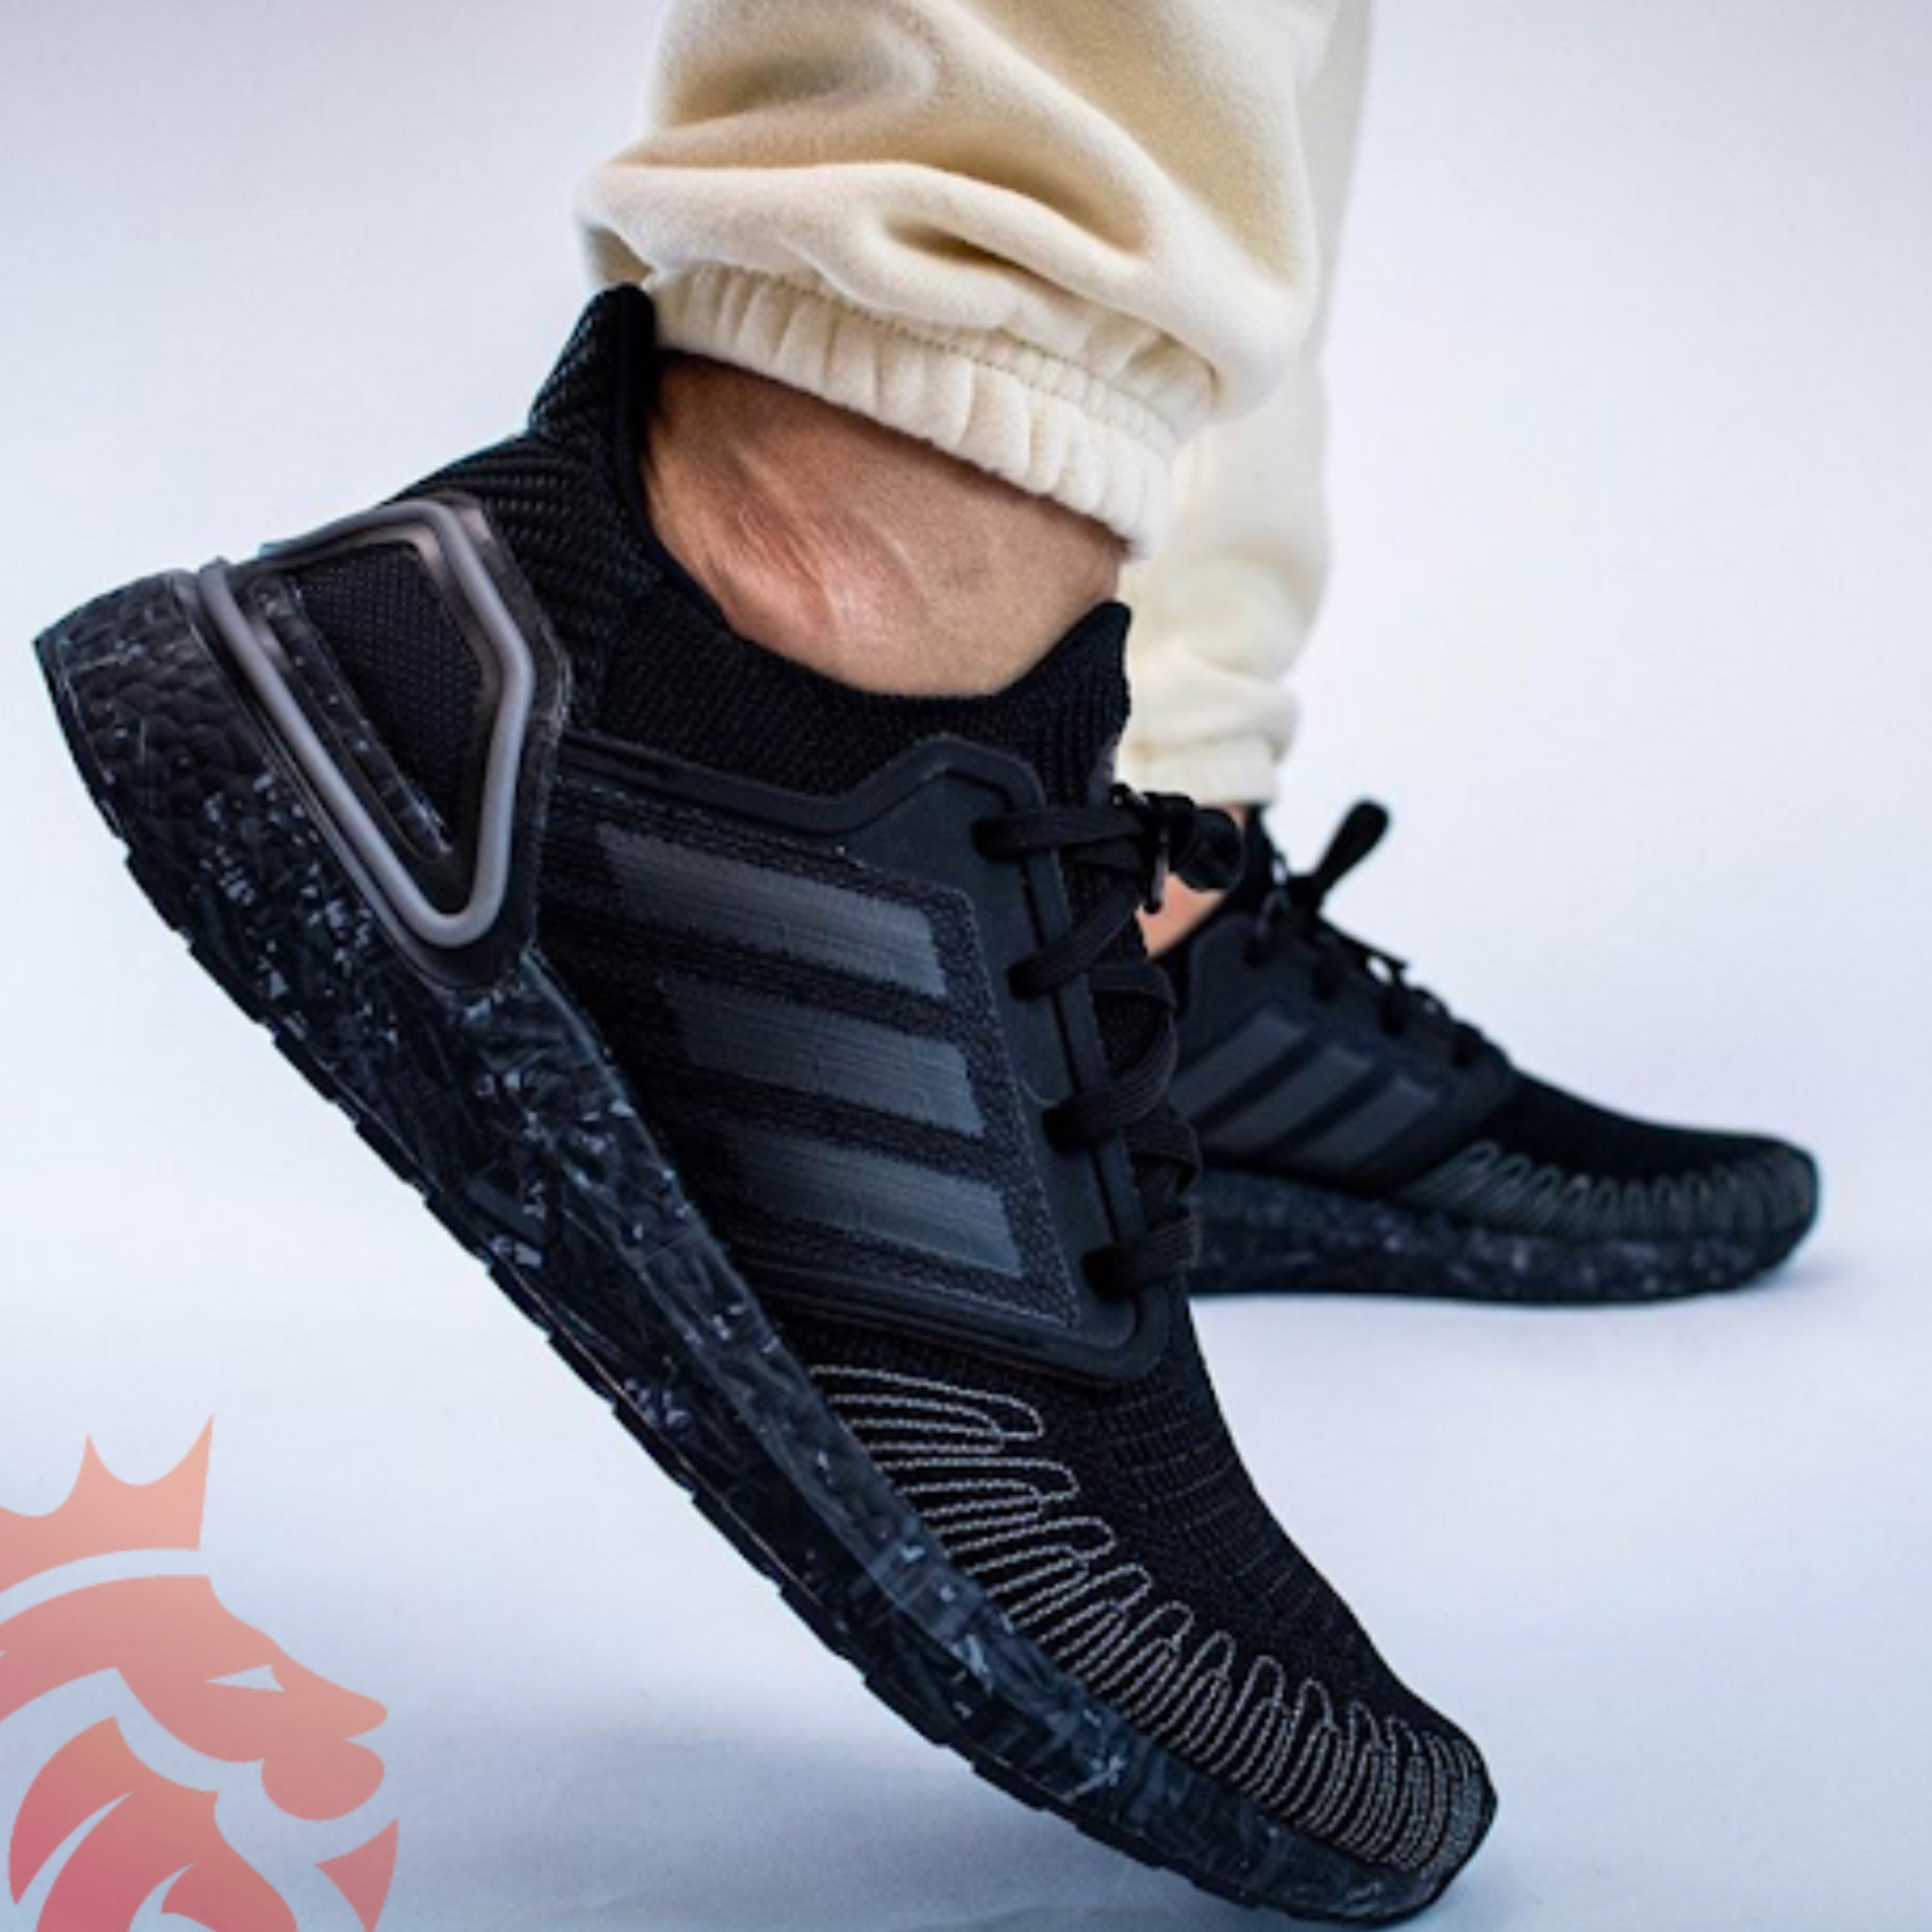 Yankeekicks On Feet James Bond 007 x adidas Ultra Boost 2020 FY0646 Core Black/Core Black-Iron Metallic